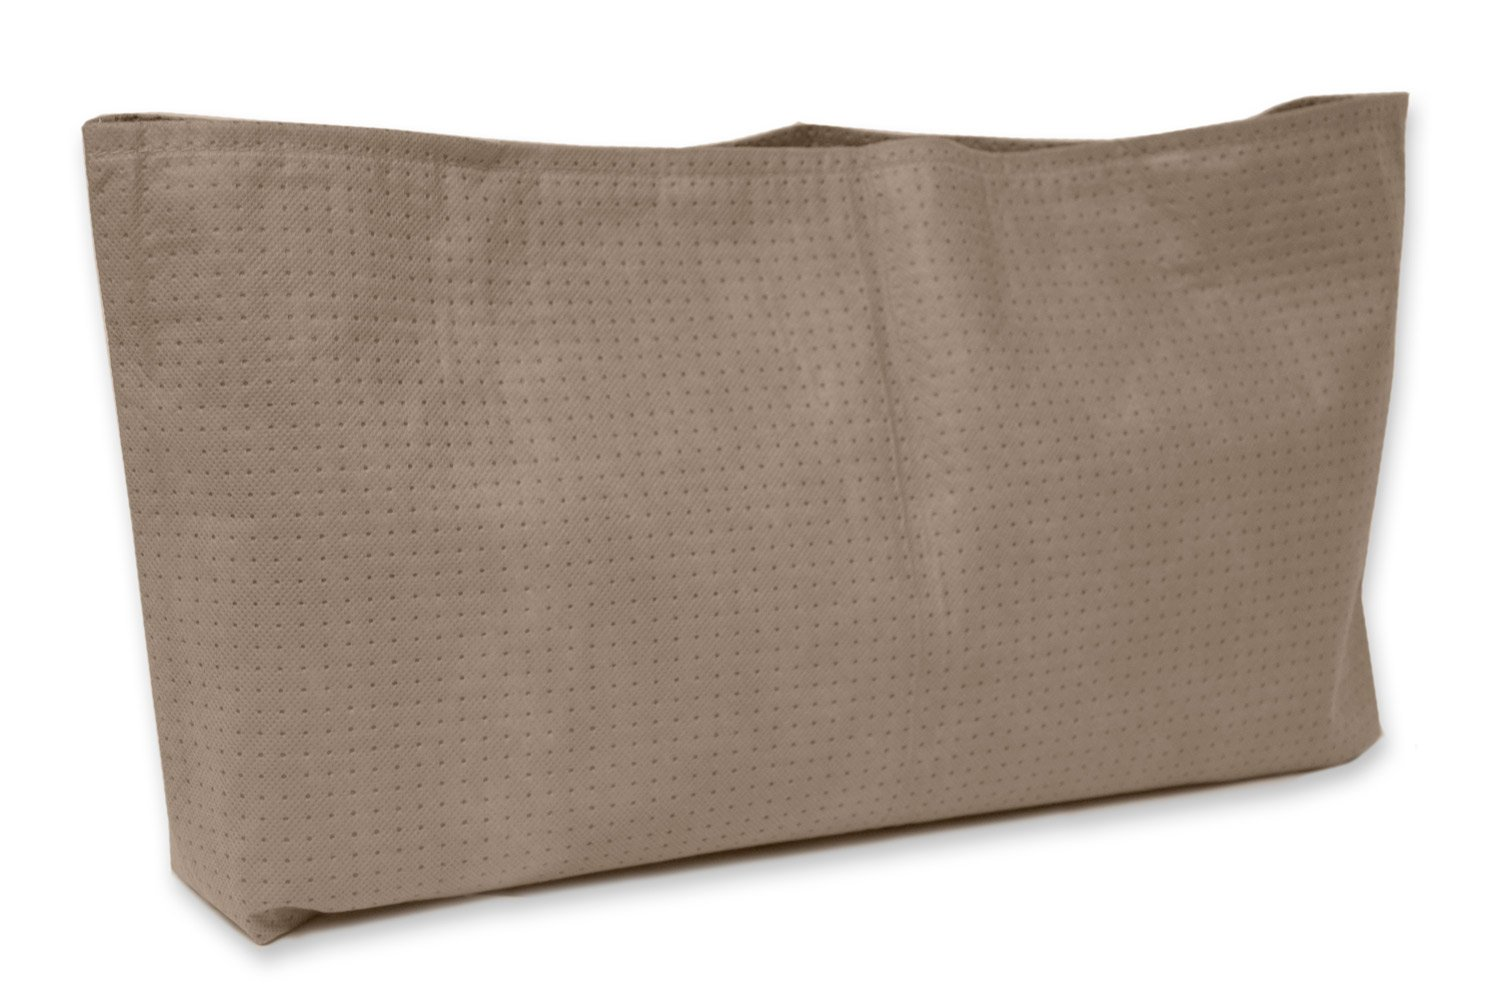 KoverRoos III 39147 Loveseat/Sofa Cover, 51-Inch Width by 33-Inch Diameter by 33-Inch Height, Taupe by KOVERROOS (Image #2)